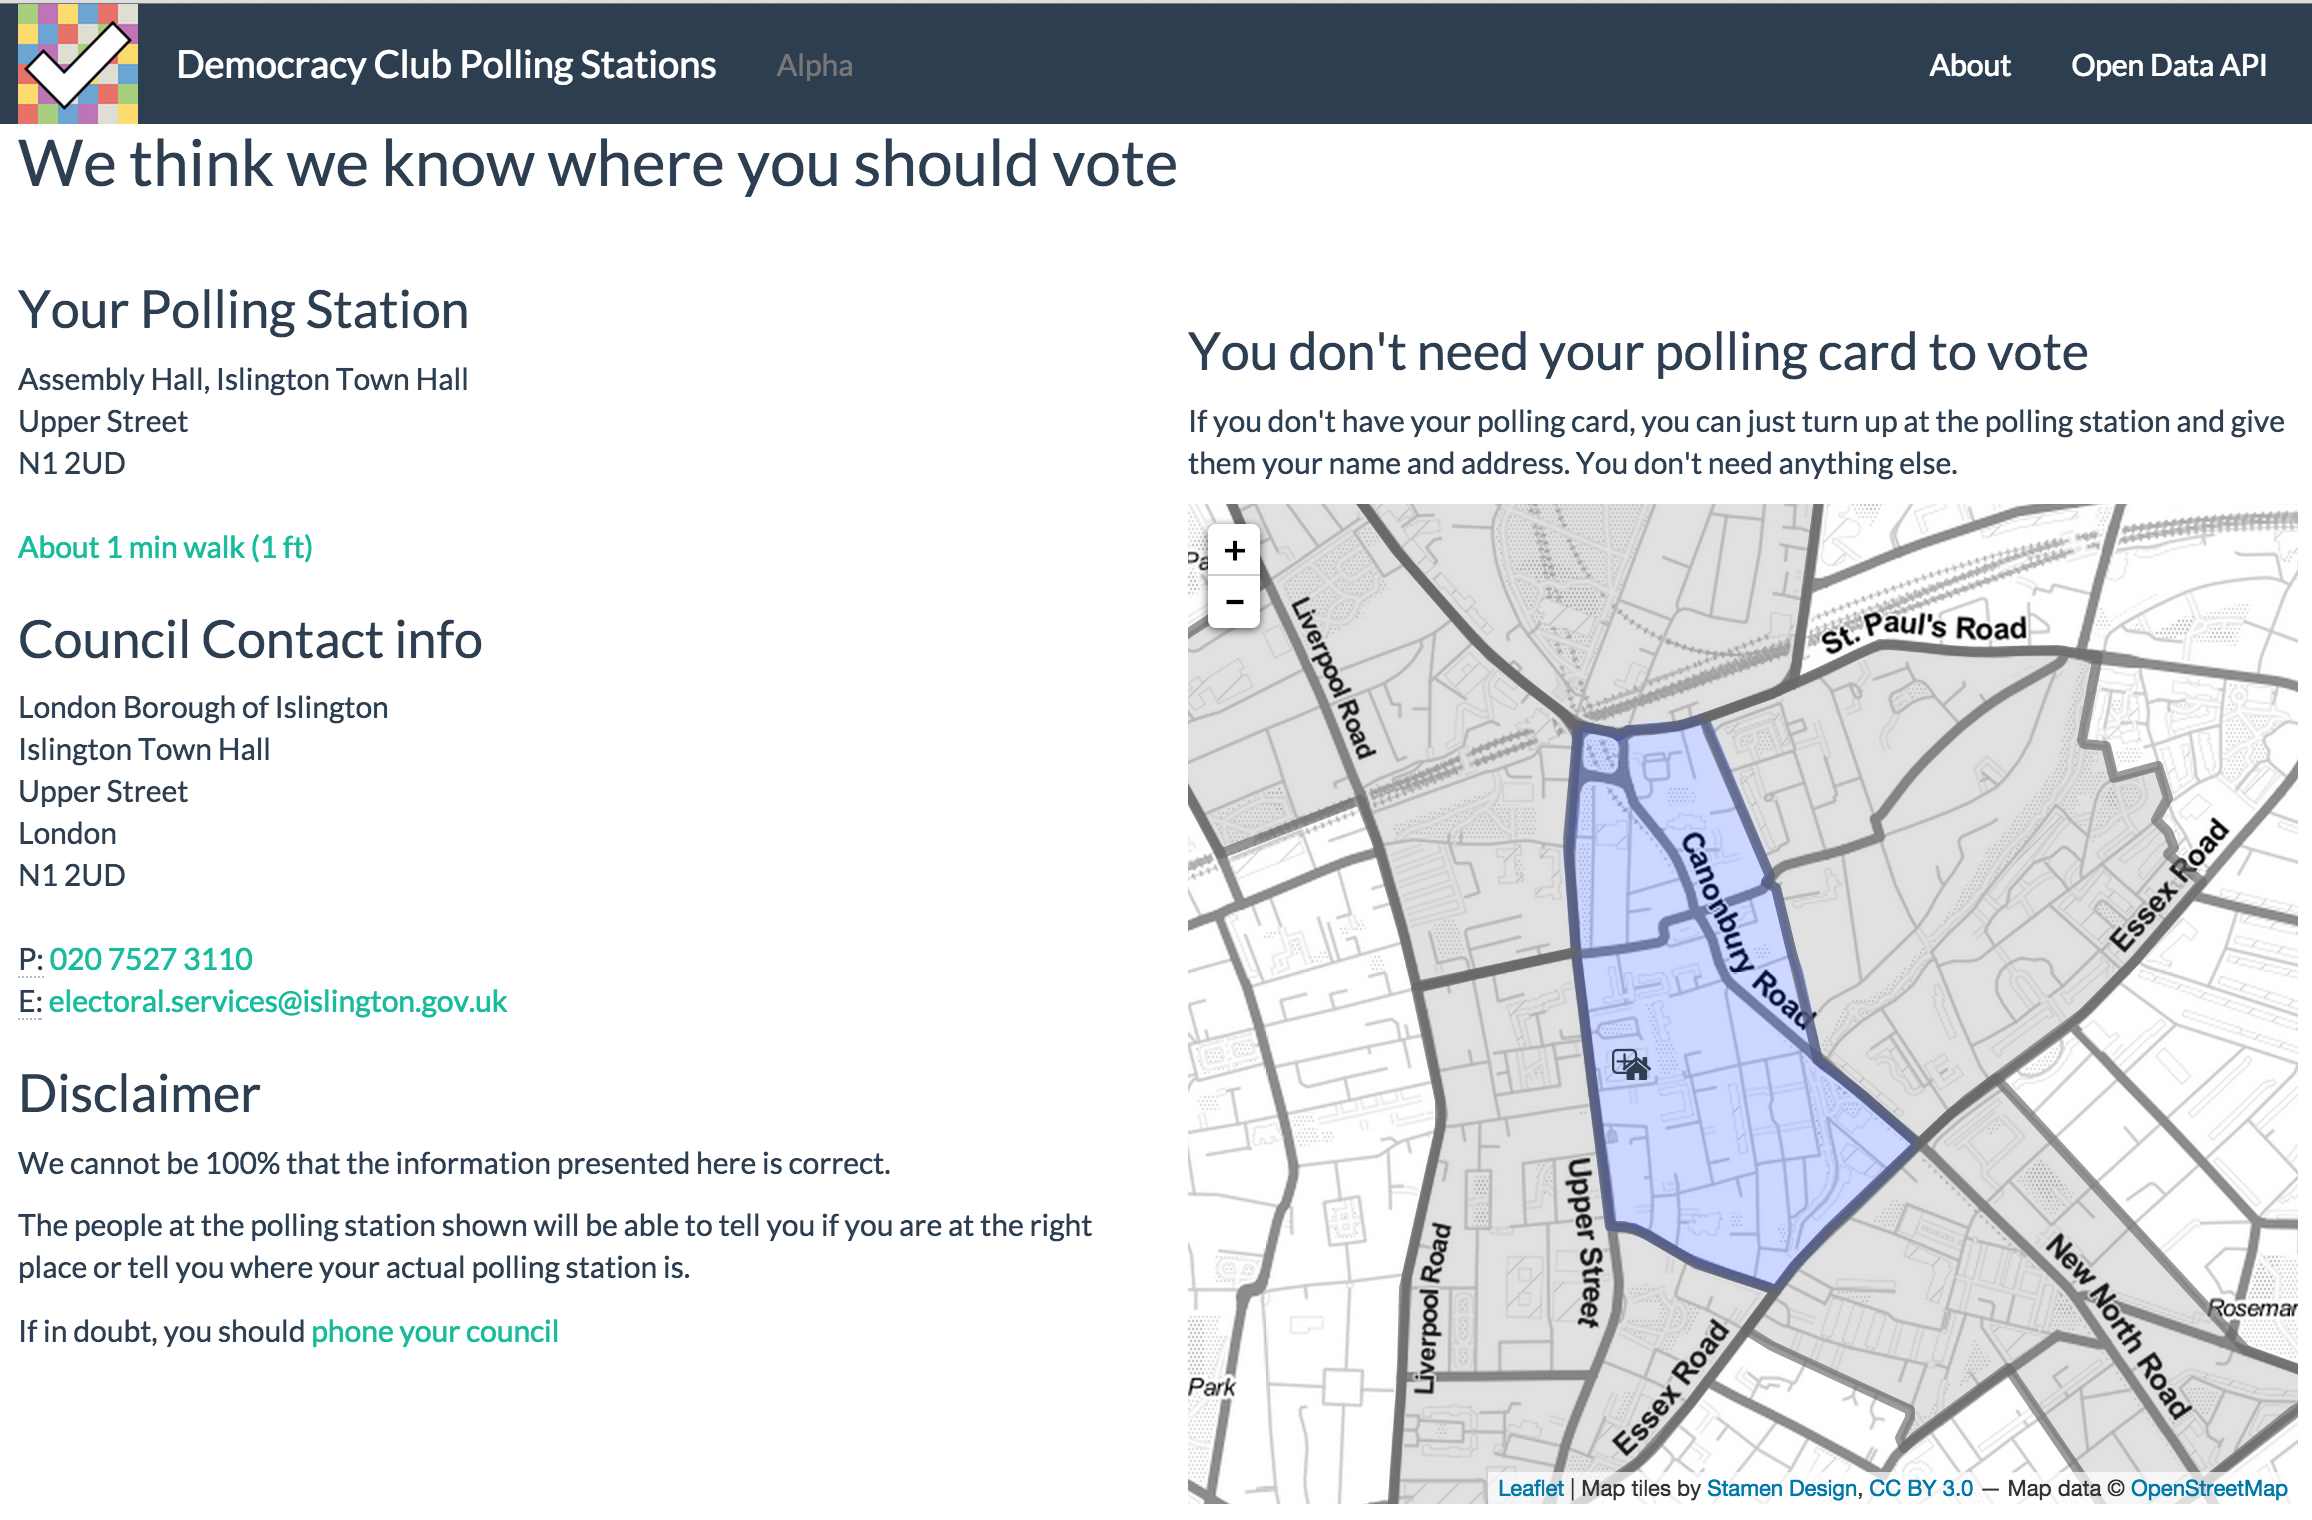 screen shot of the Democracy Club Polling Station Finder